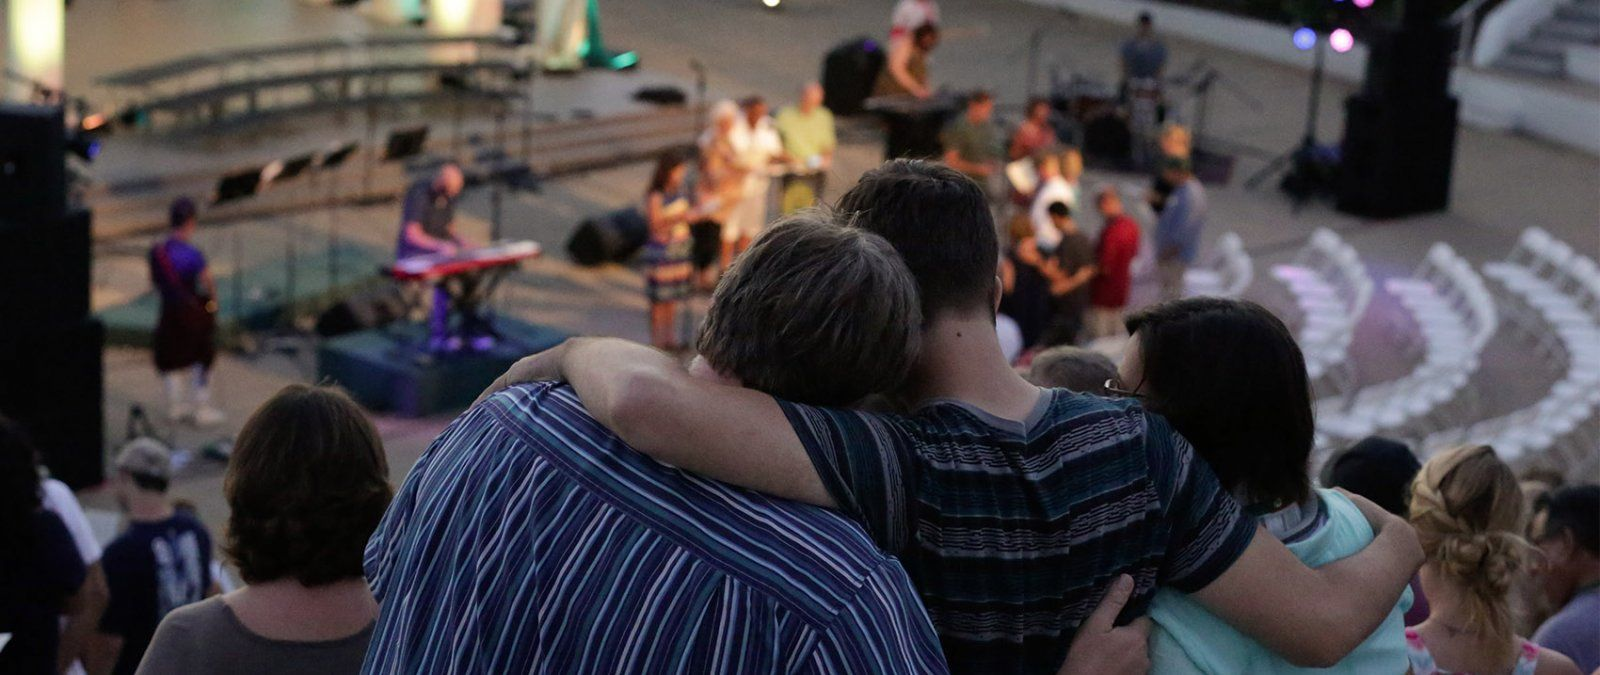 A family worships together in the Greek Amphitheatre during NSO.